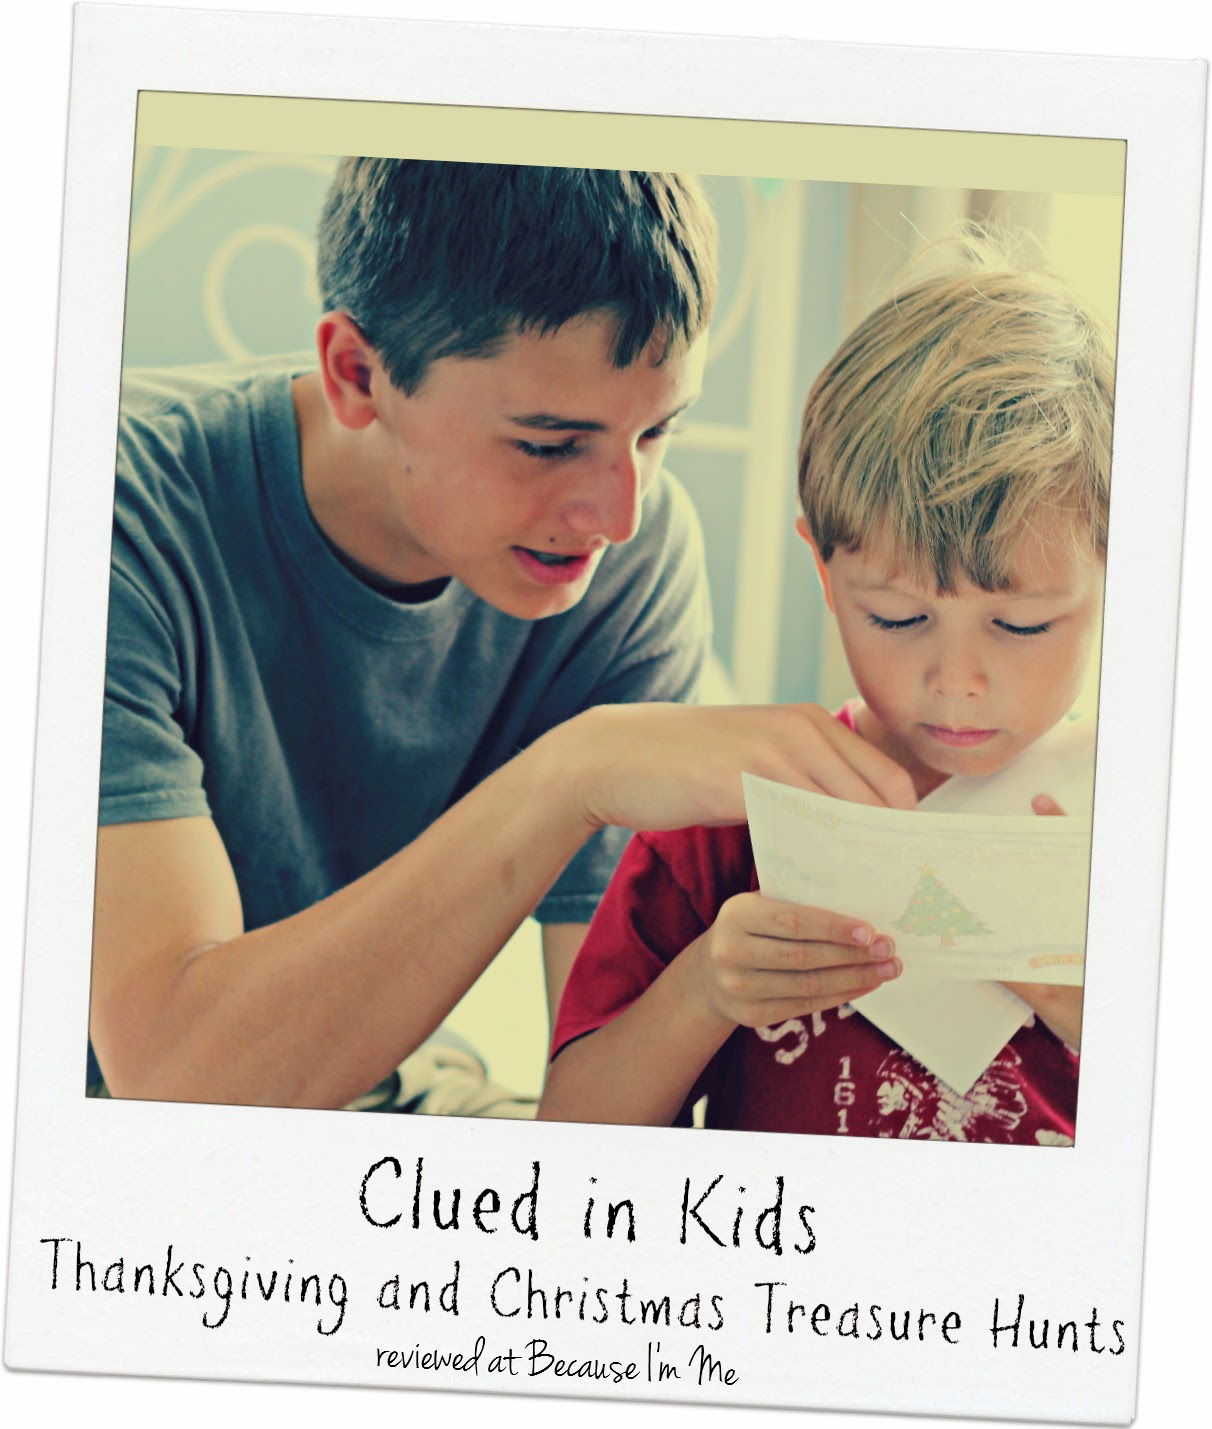 Because I'm Me reviews Clued in Kids holiday treasure hunts, created for kids and adults